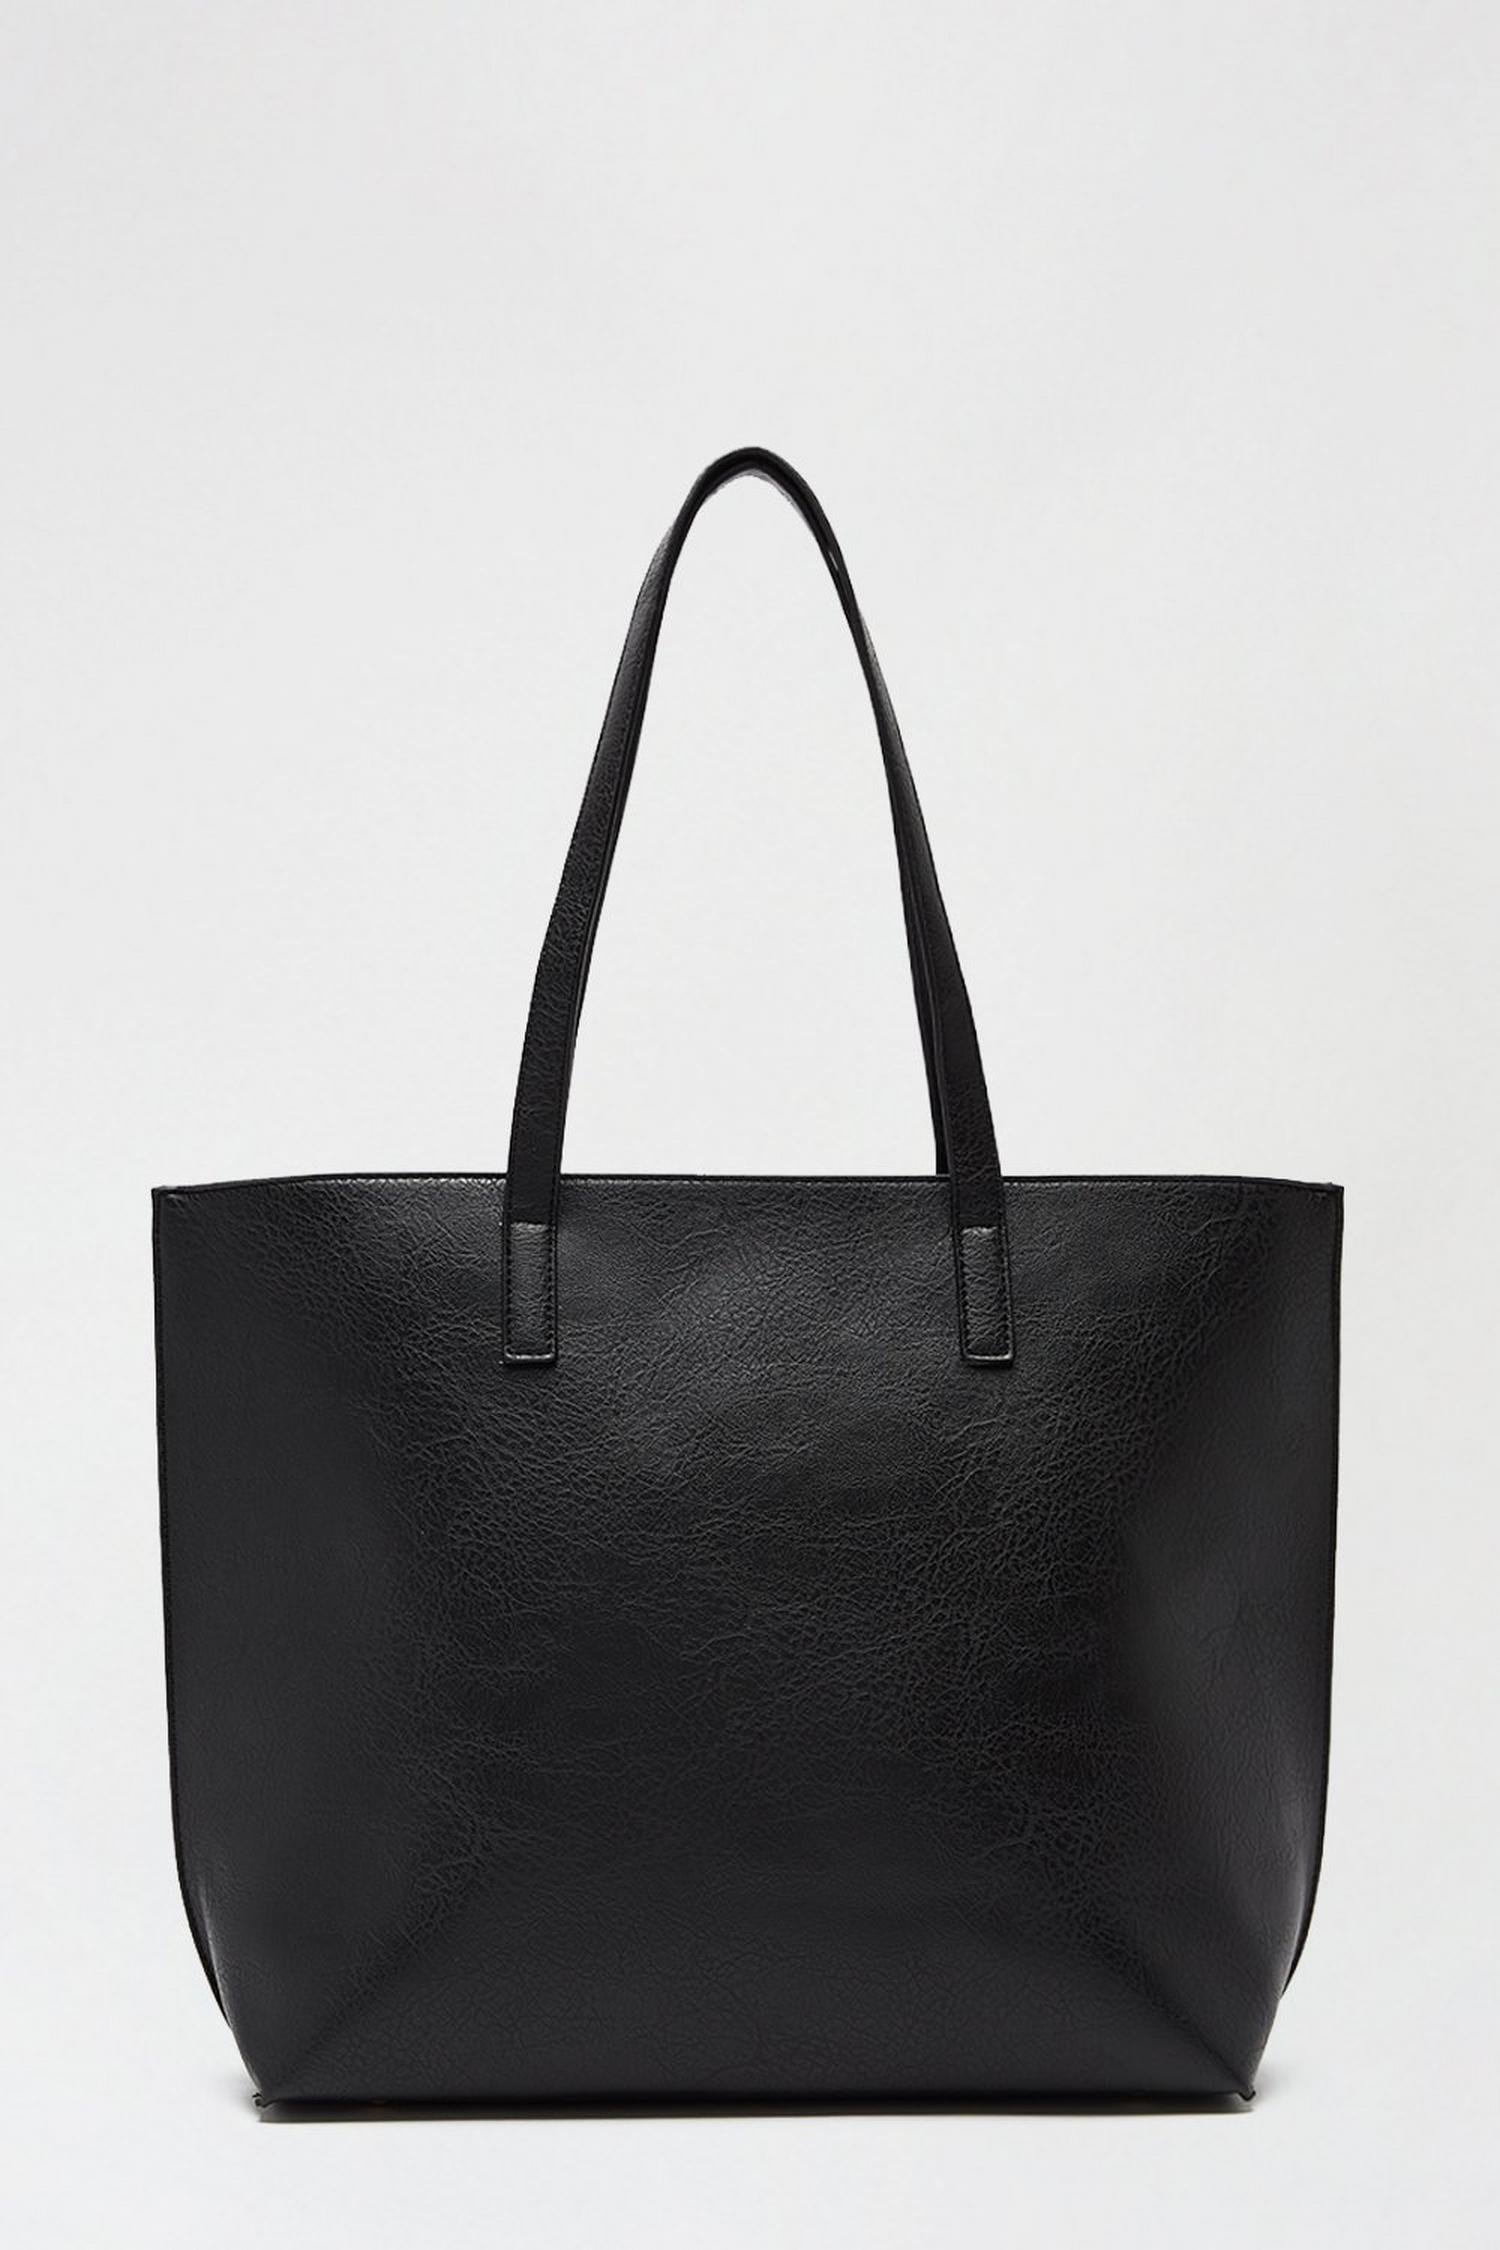 105 Black Shopper Bag image number 1